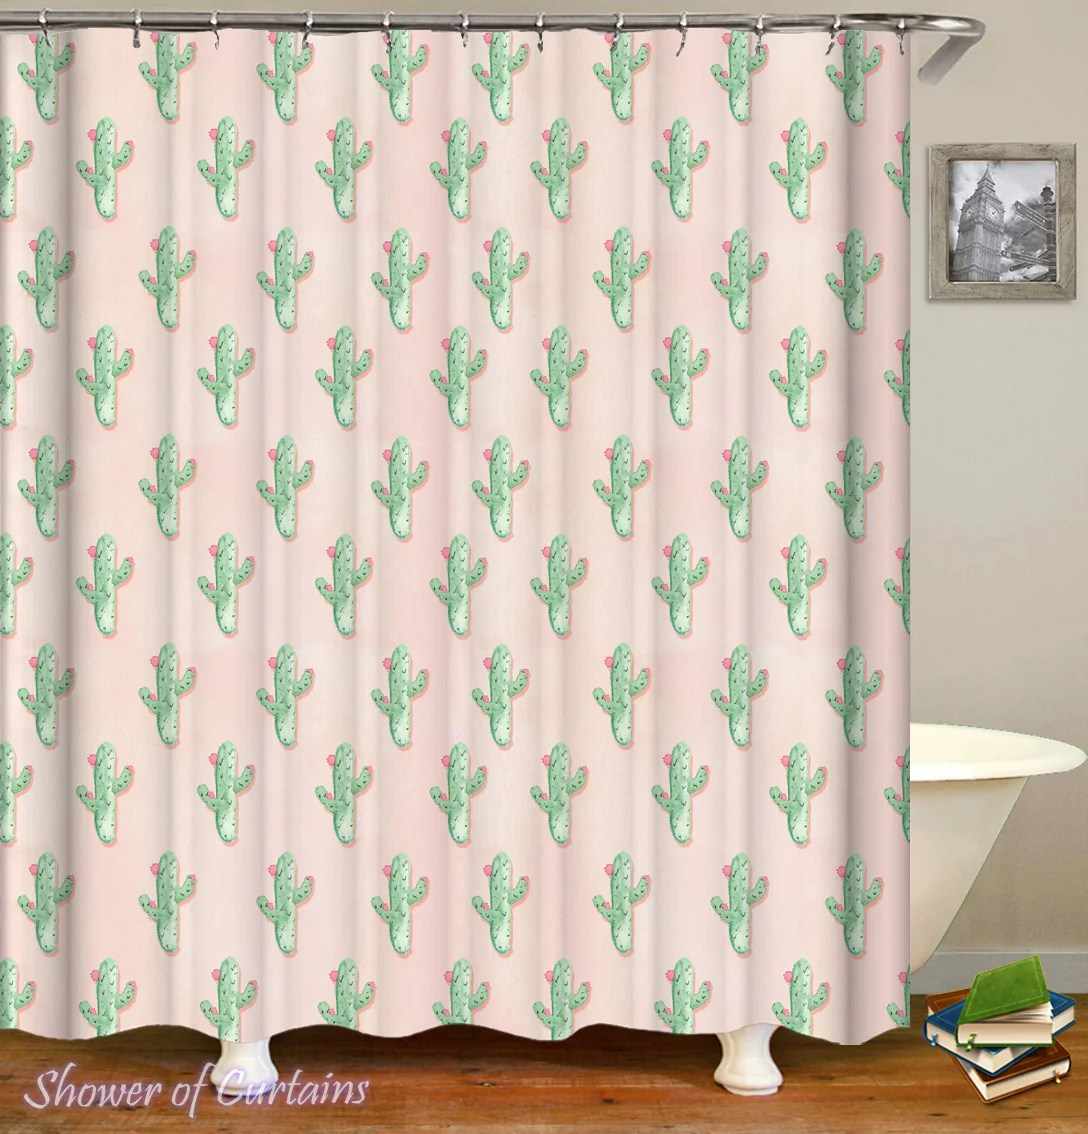 Cute Girly Shower Curtains Floral Mini Cactus